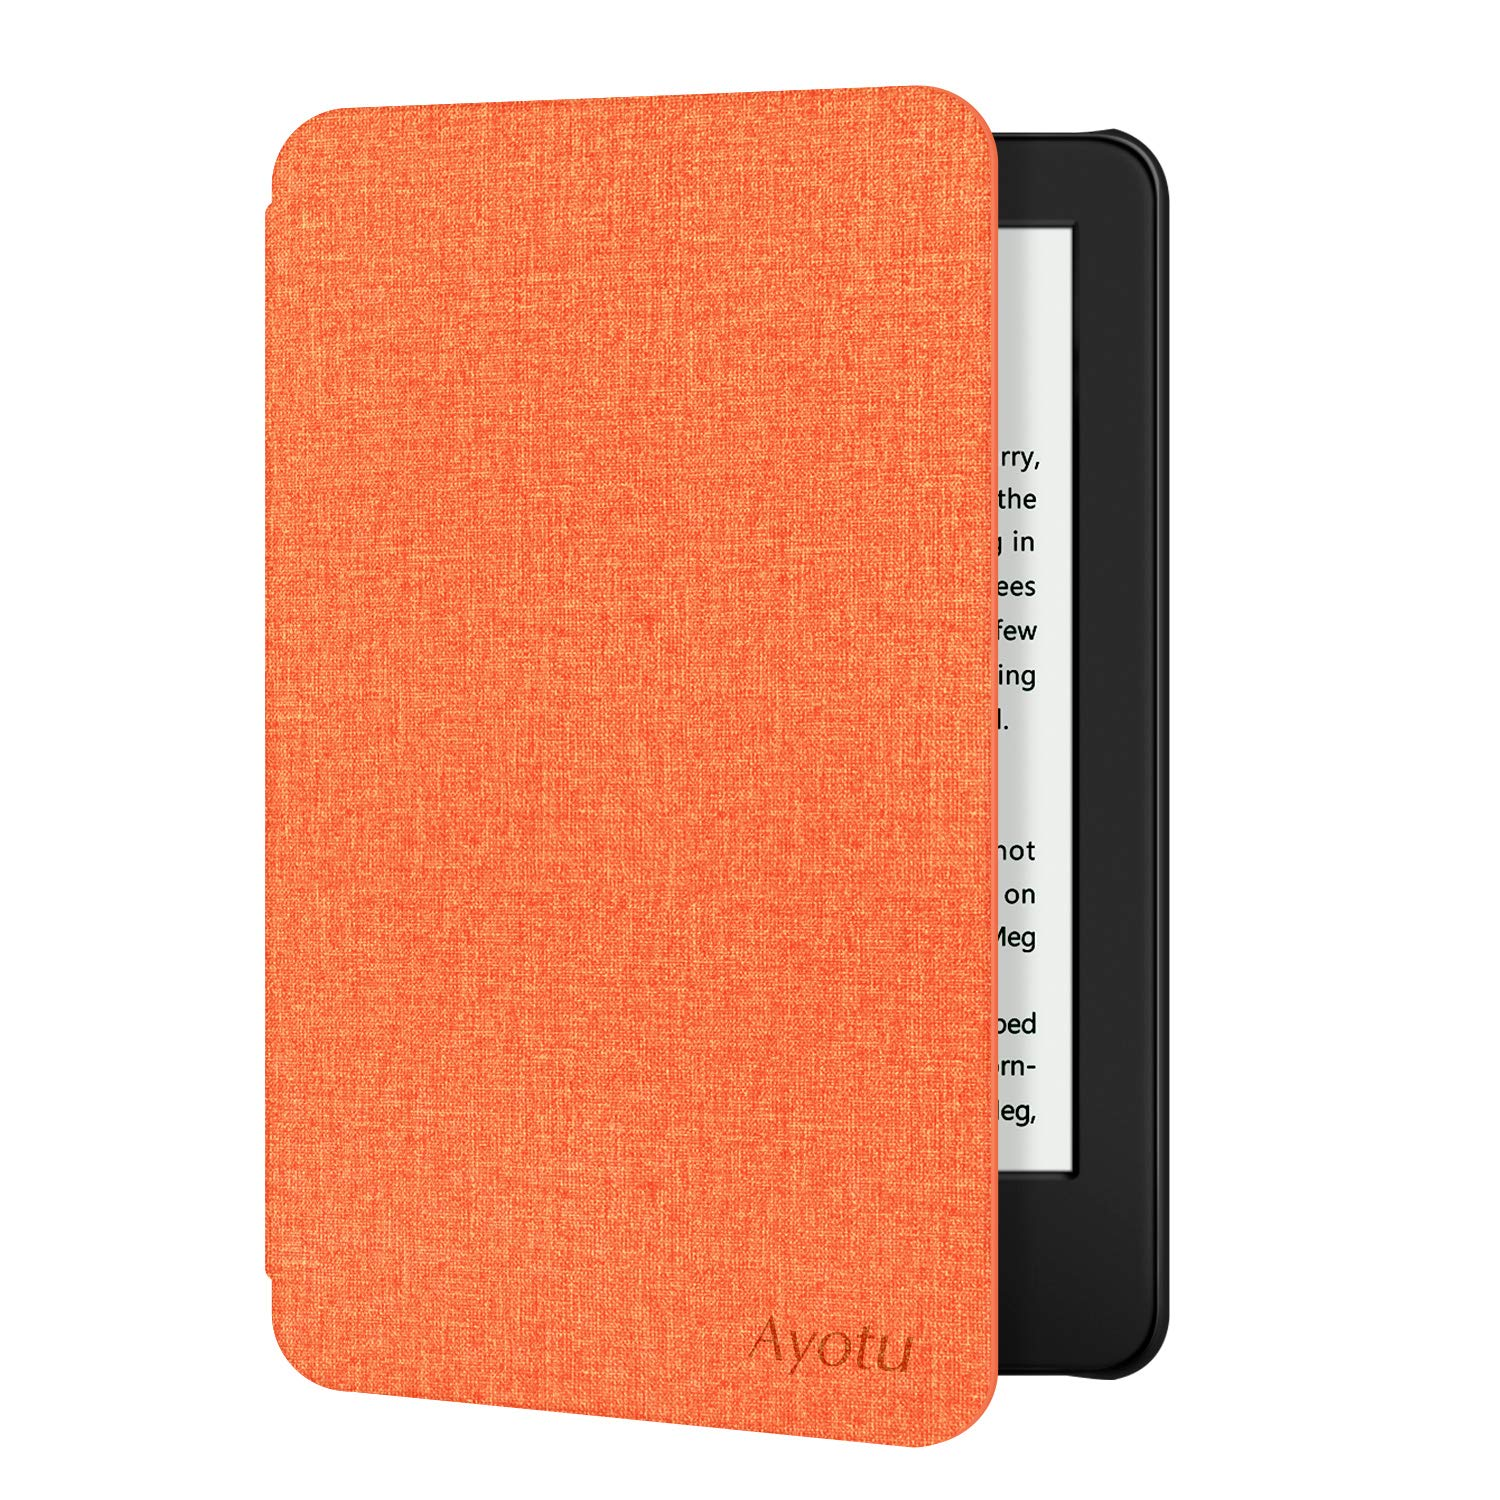 Ayotu Case for All-New Kindle 10th Gen 2019 Release - Durable Cover with Auto Wake/Sleep fits Amazon All-New Kindle 2019(will not fit Kindle Paperwhite or Kindle Oasis) Orange